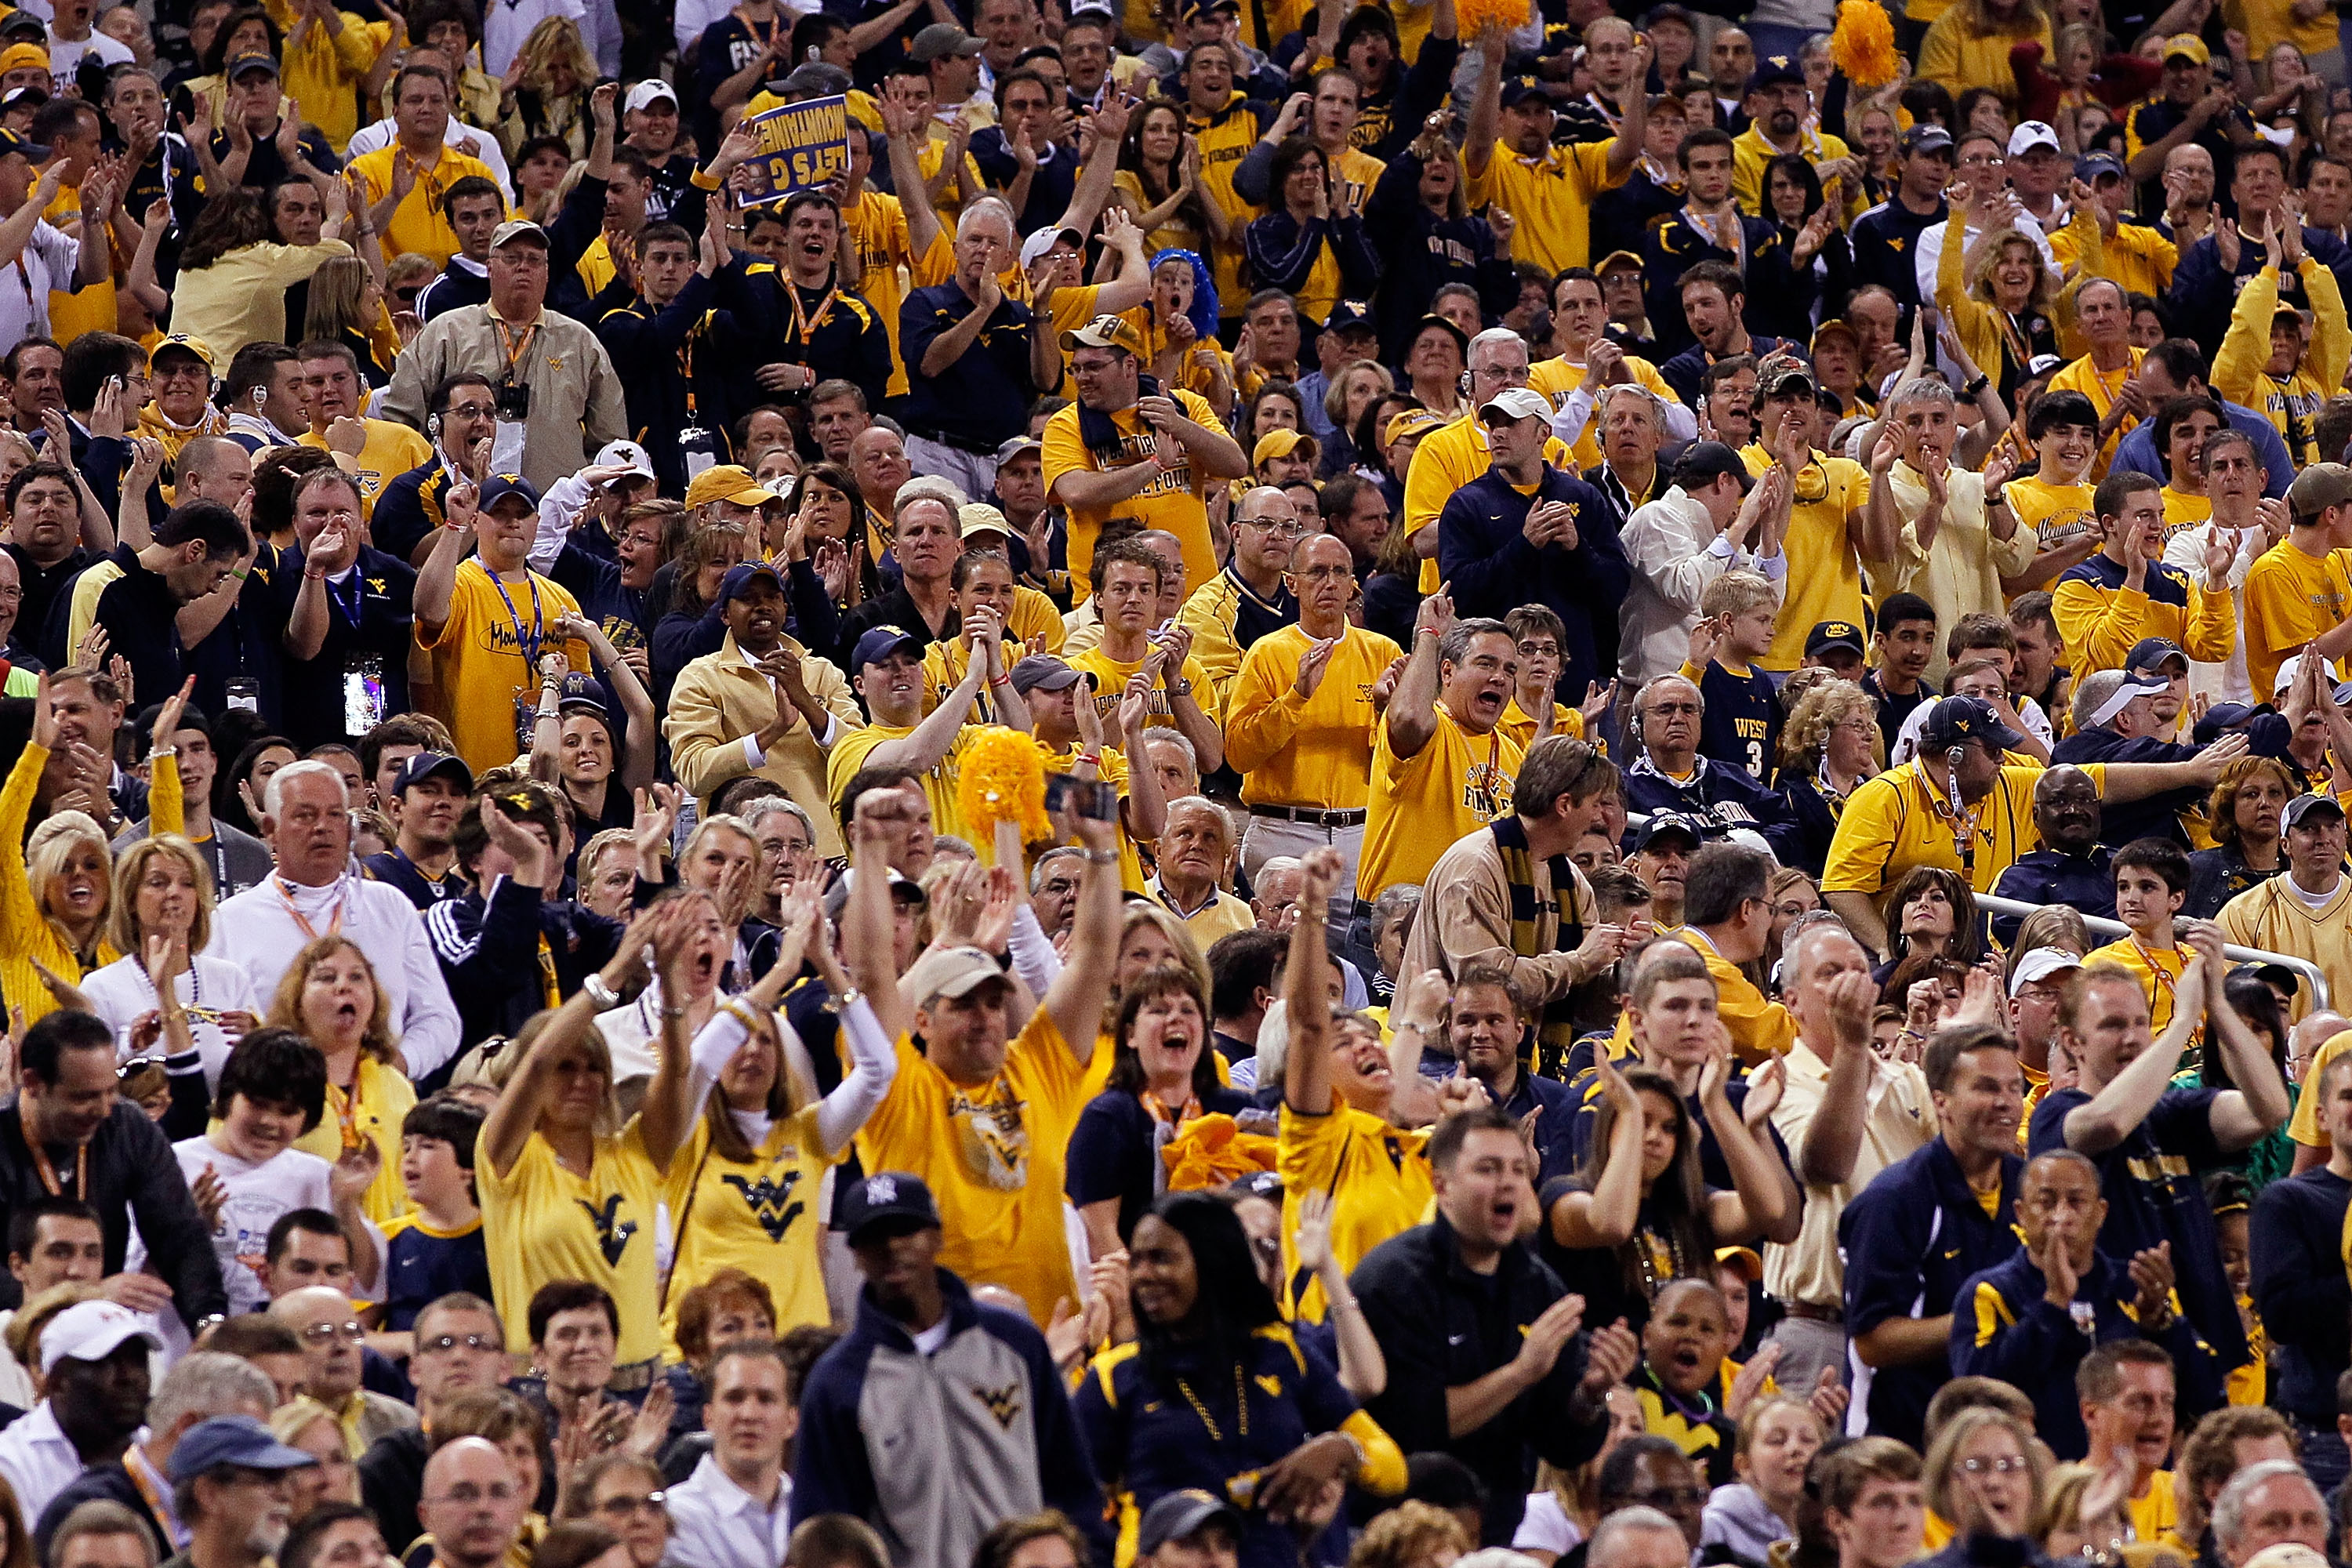 INDIANAPOLIS - APRIL 03:  Fans of the West Virginia Mountaineers cheer on their team in the first half against the Duke Blue Devils during the National Semifinal game of the 2010 NCAA Division I Men's Basketball Championship at Lucas Oil Stadium on April